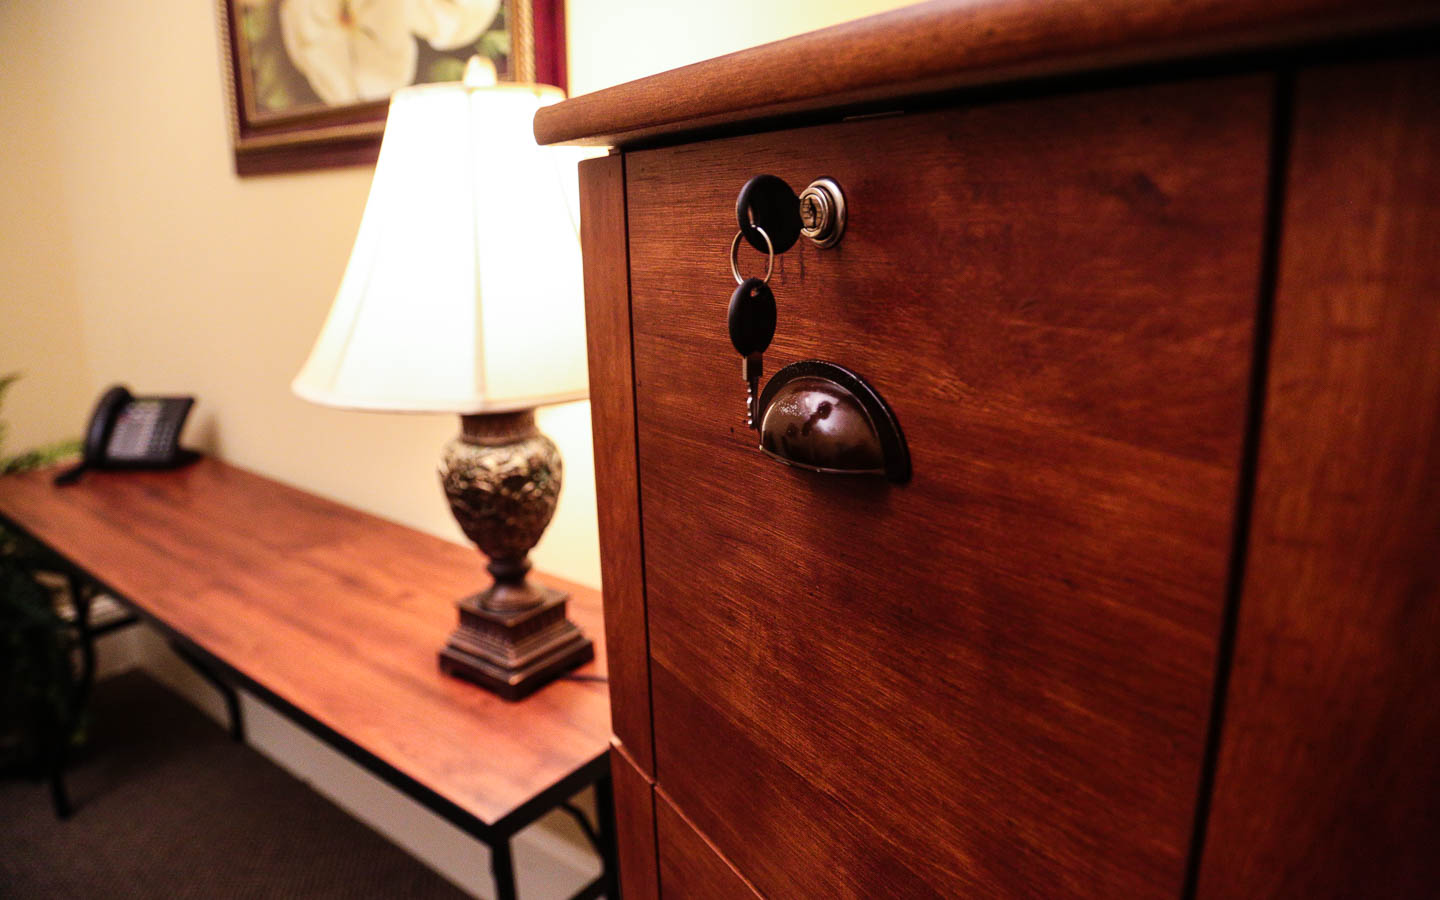 locked file cabinet overlooking desk space